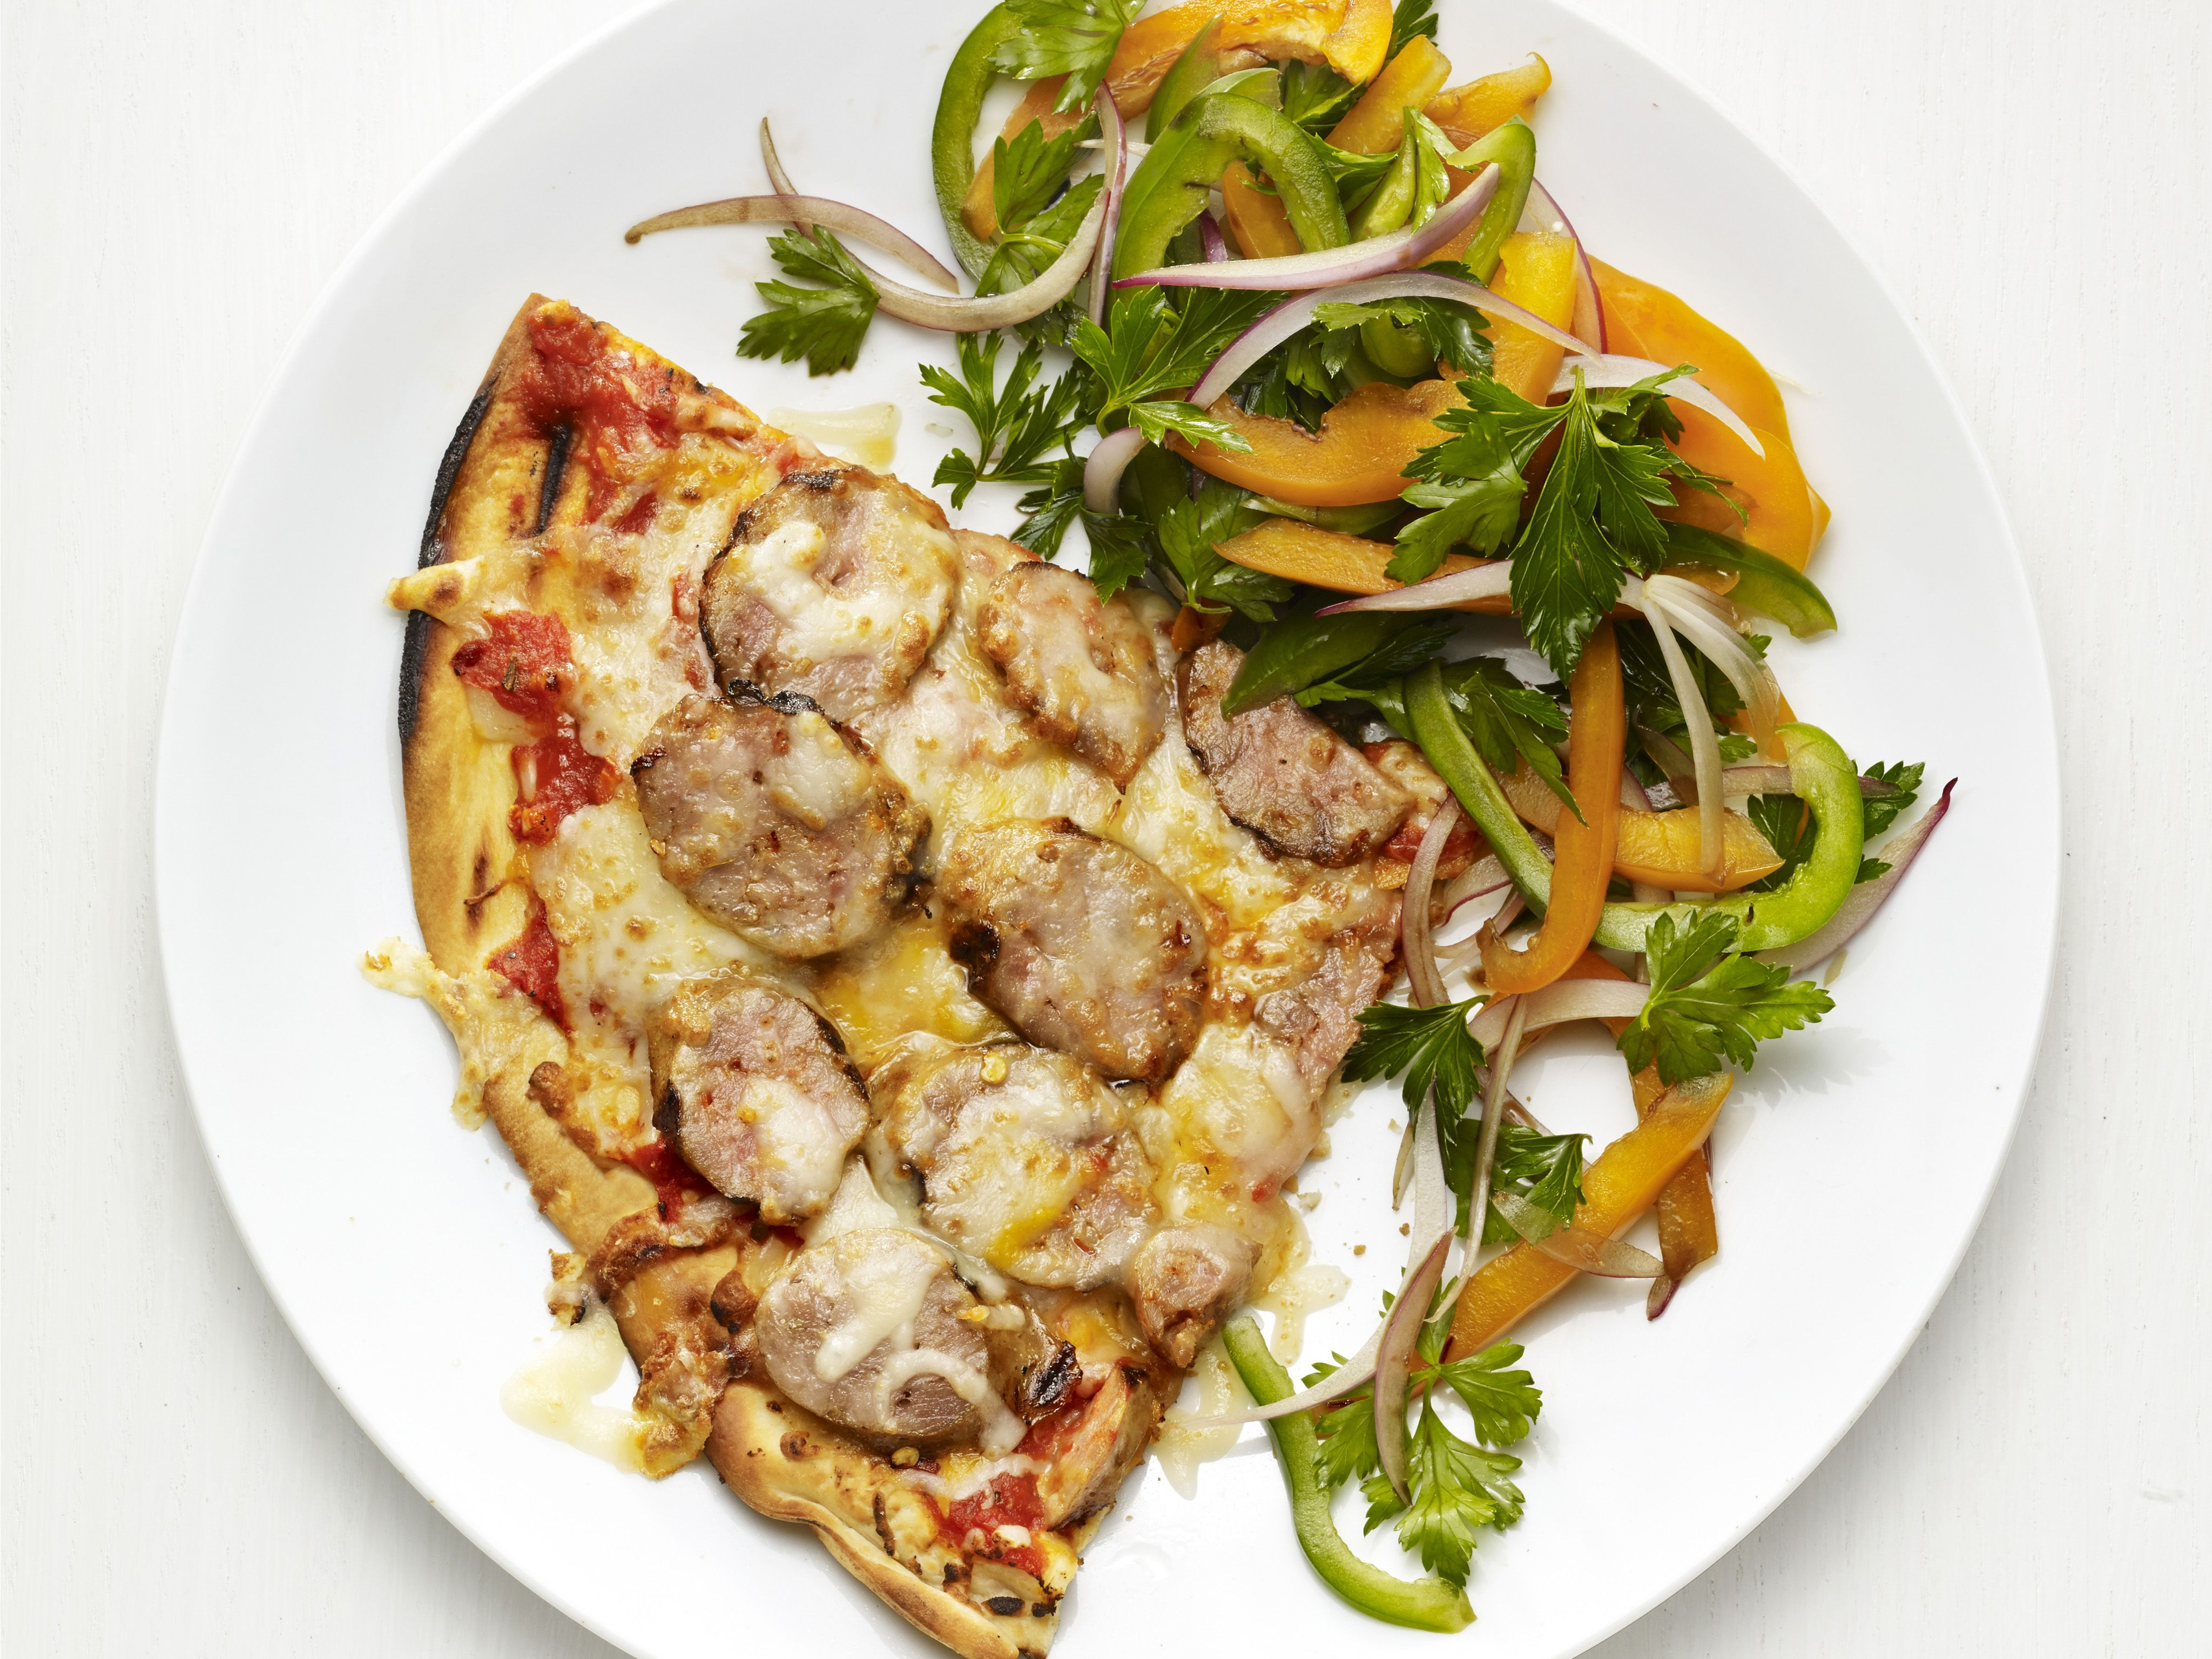 Grilled sausage pizza with bell pepper salad receta forumfinder Gallery